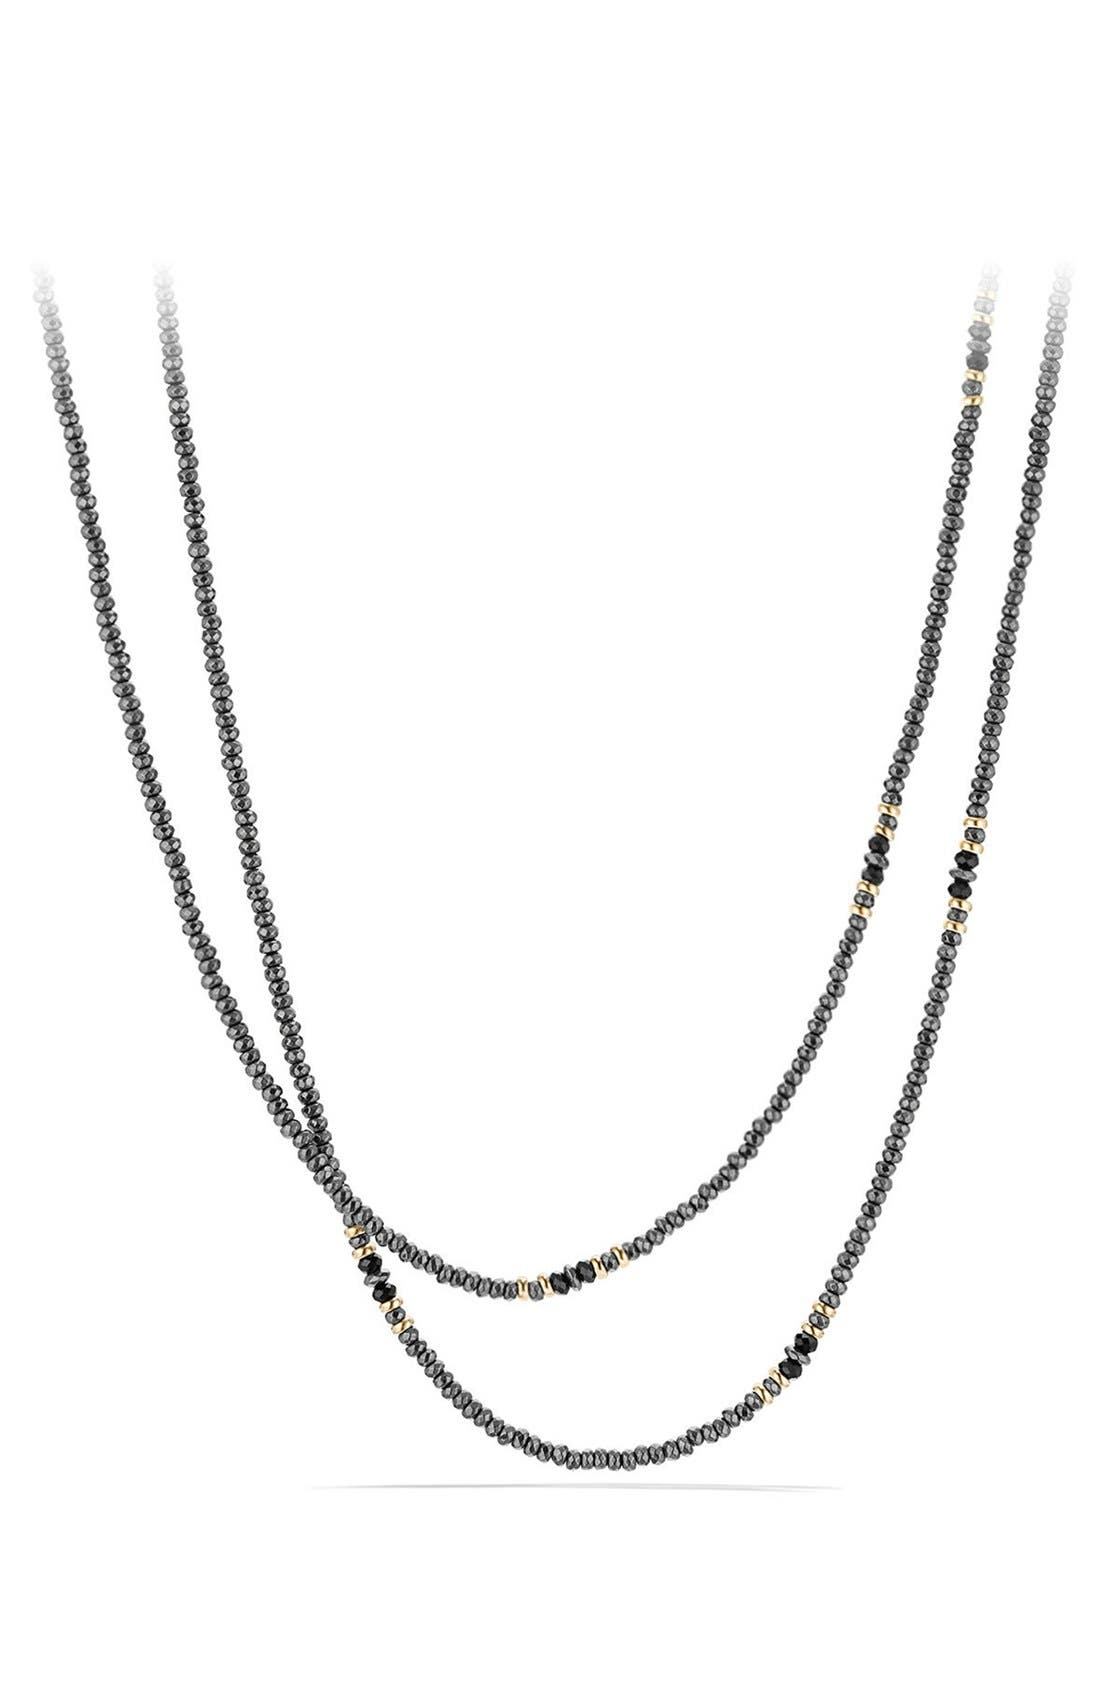 Main Image - David Yurman Osetra Tweejoux Necklace with 18K Gold